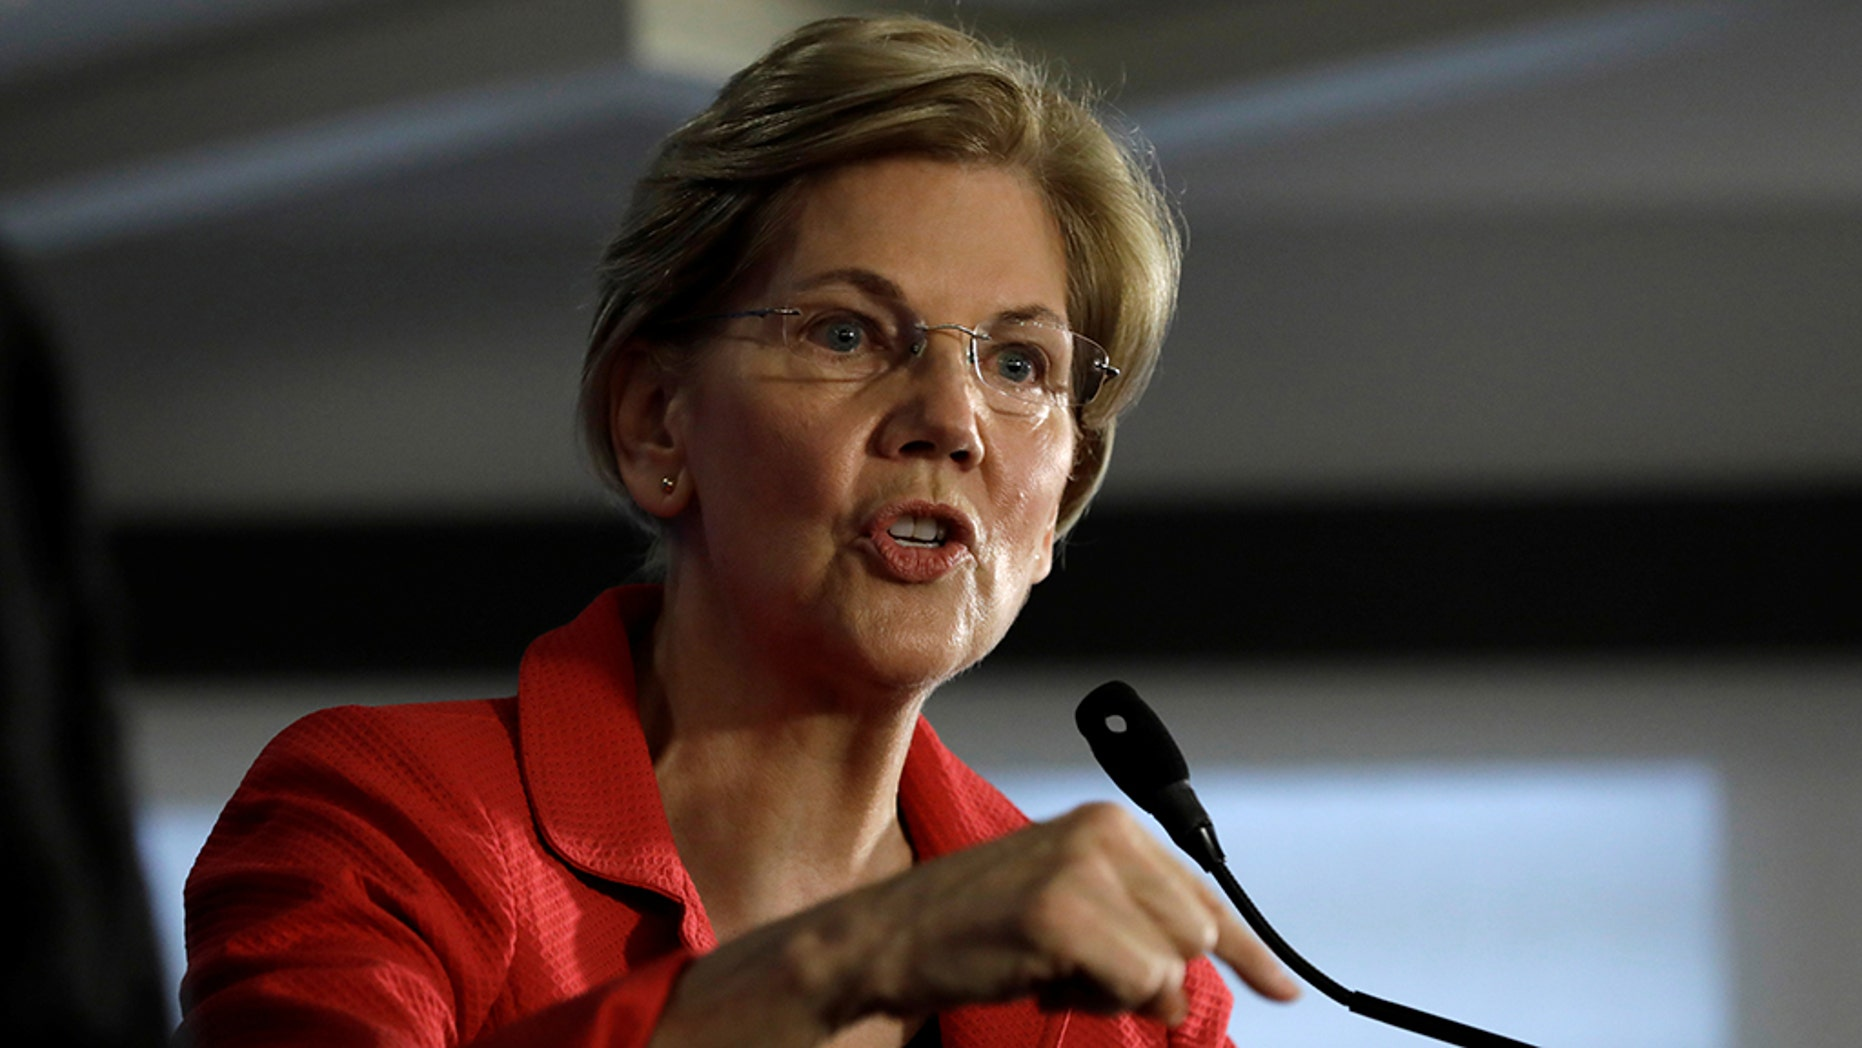 Elizabeth Warren in Iowa: 'I am not a person of color'